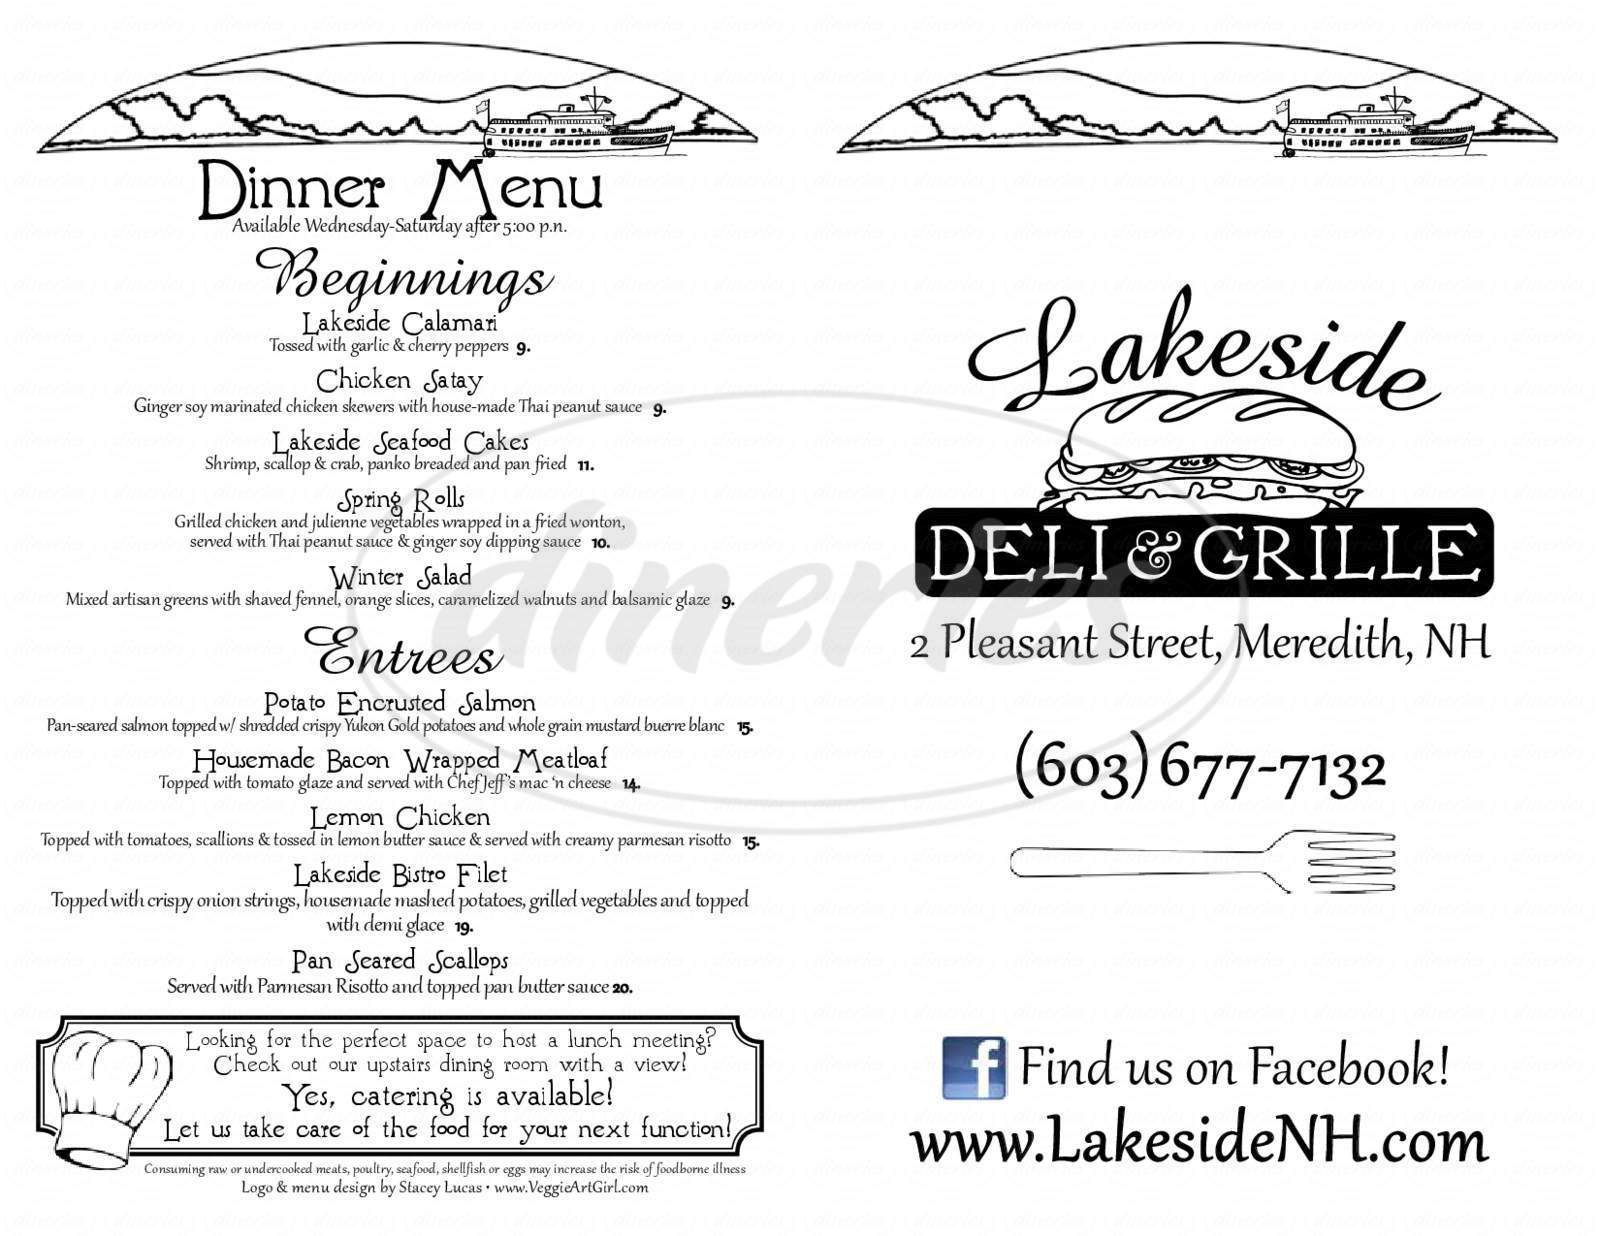 menu for Lakeside Deli and Grille